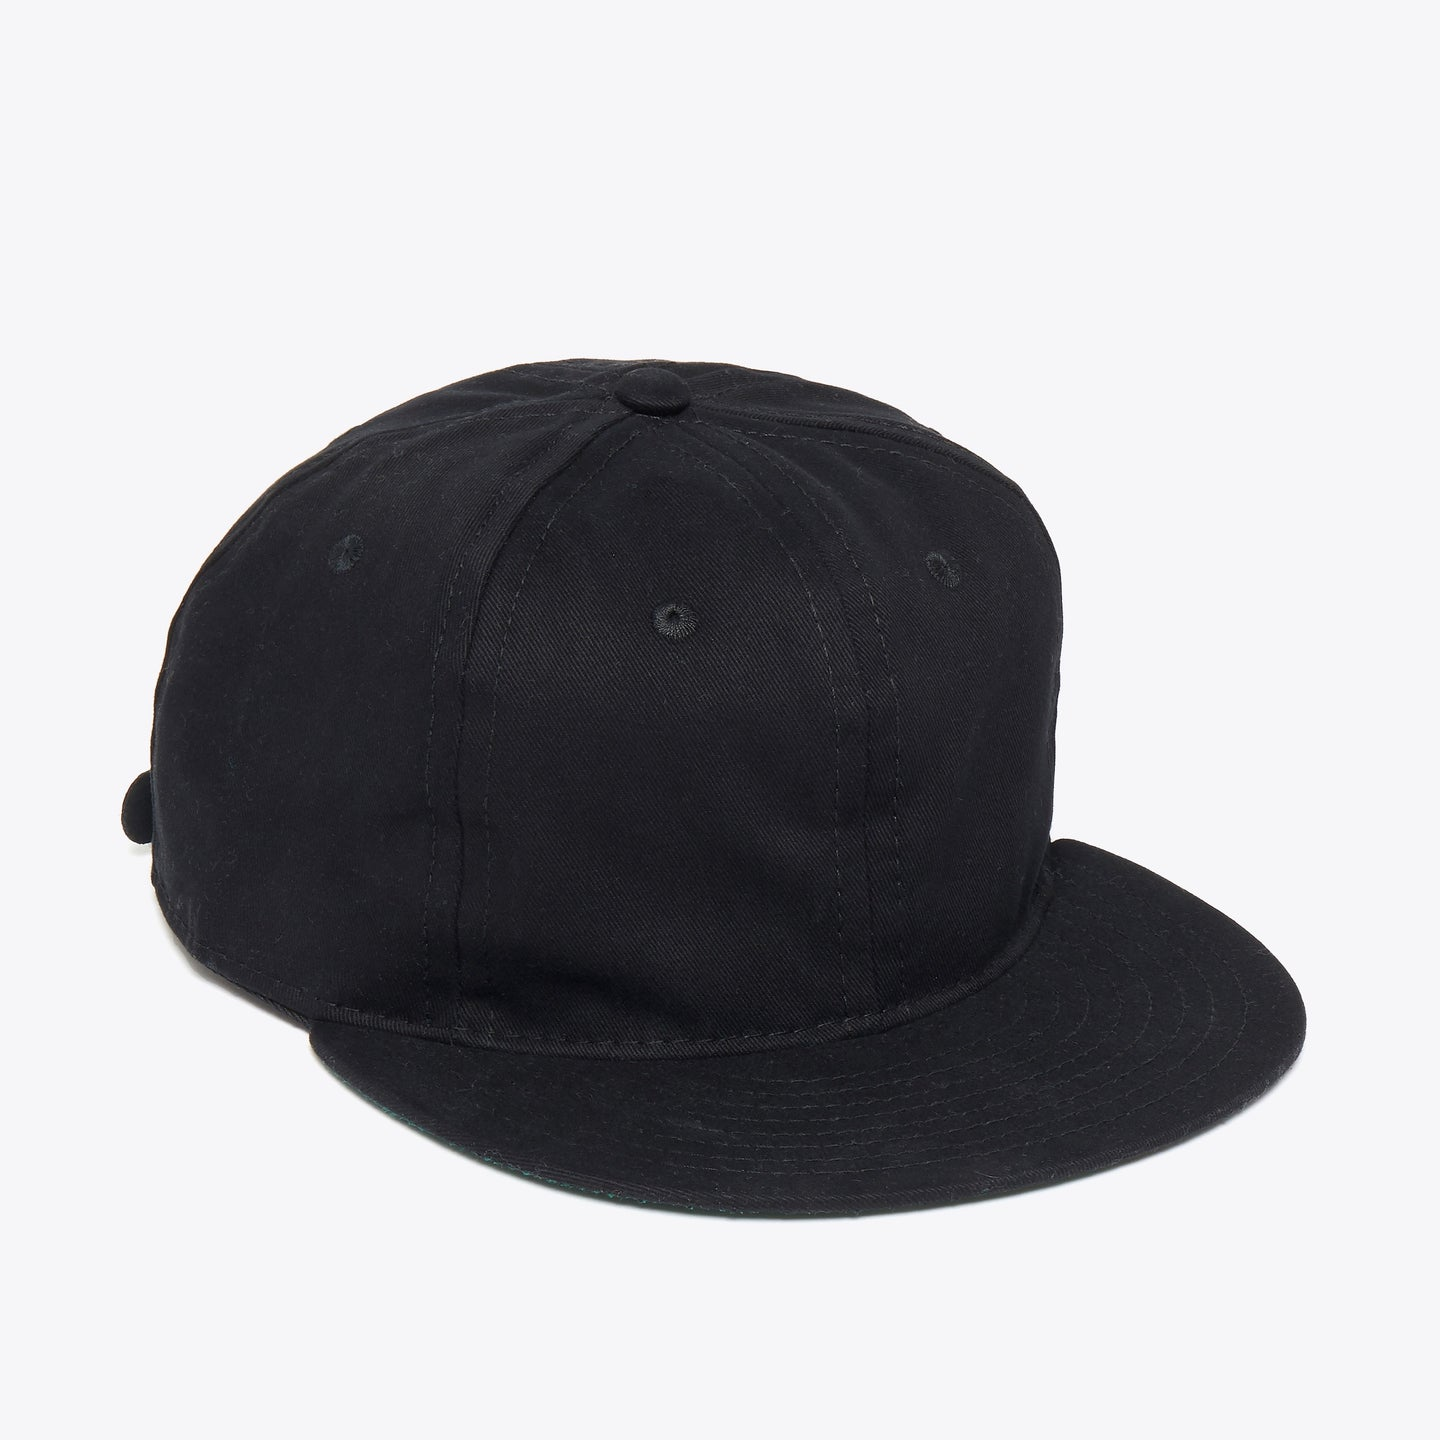 Black Cotton Ballcap